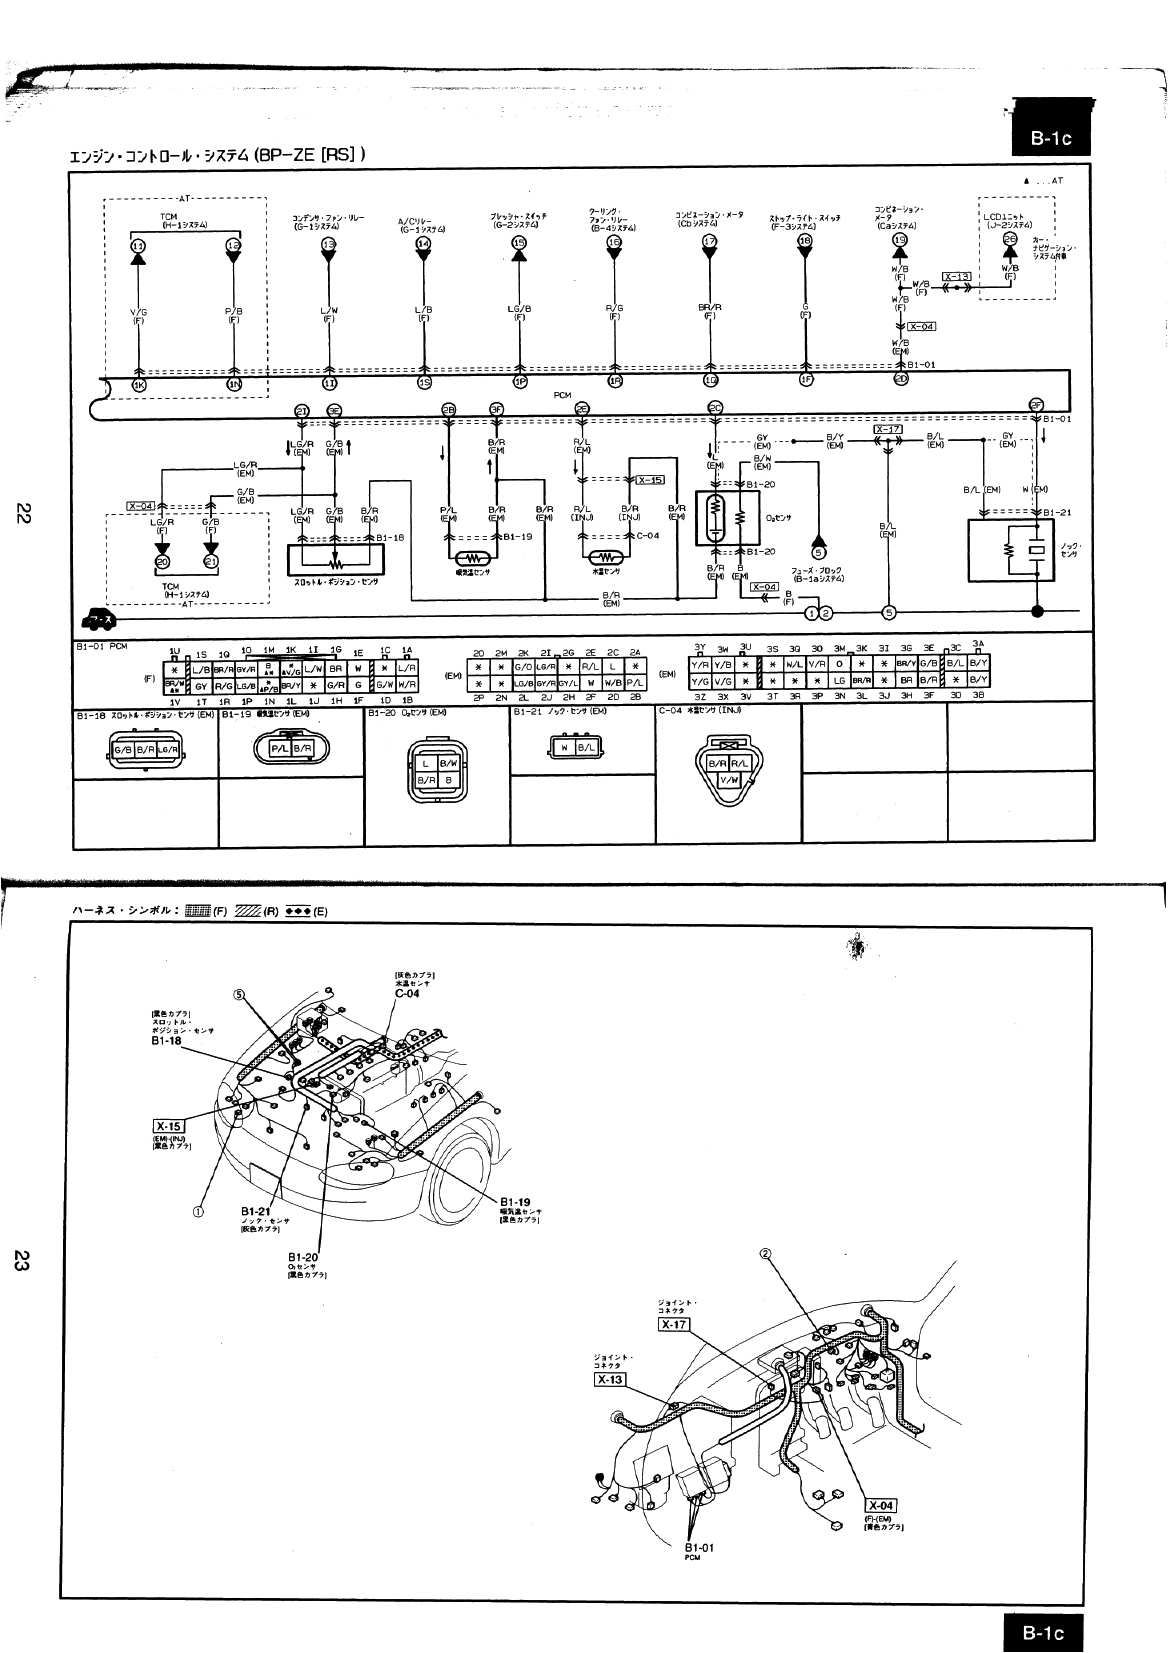 aiphone intercom systems wiring diagram intercom wiring guide ... on maglock wiring diagram, access control wiring diagram, door strike intercom access control diagram, proficient audio wiring diagram, ccd camera wiring diagram, russound wiring diagram, smoke detectors wiring diagram, alarm system wiring diagram, paging horn wiring diagram, cctv wiring diagram, central vacuum installation diagram, lighting fixtures wiring diagram, security systems wiring diagram,